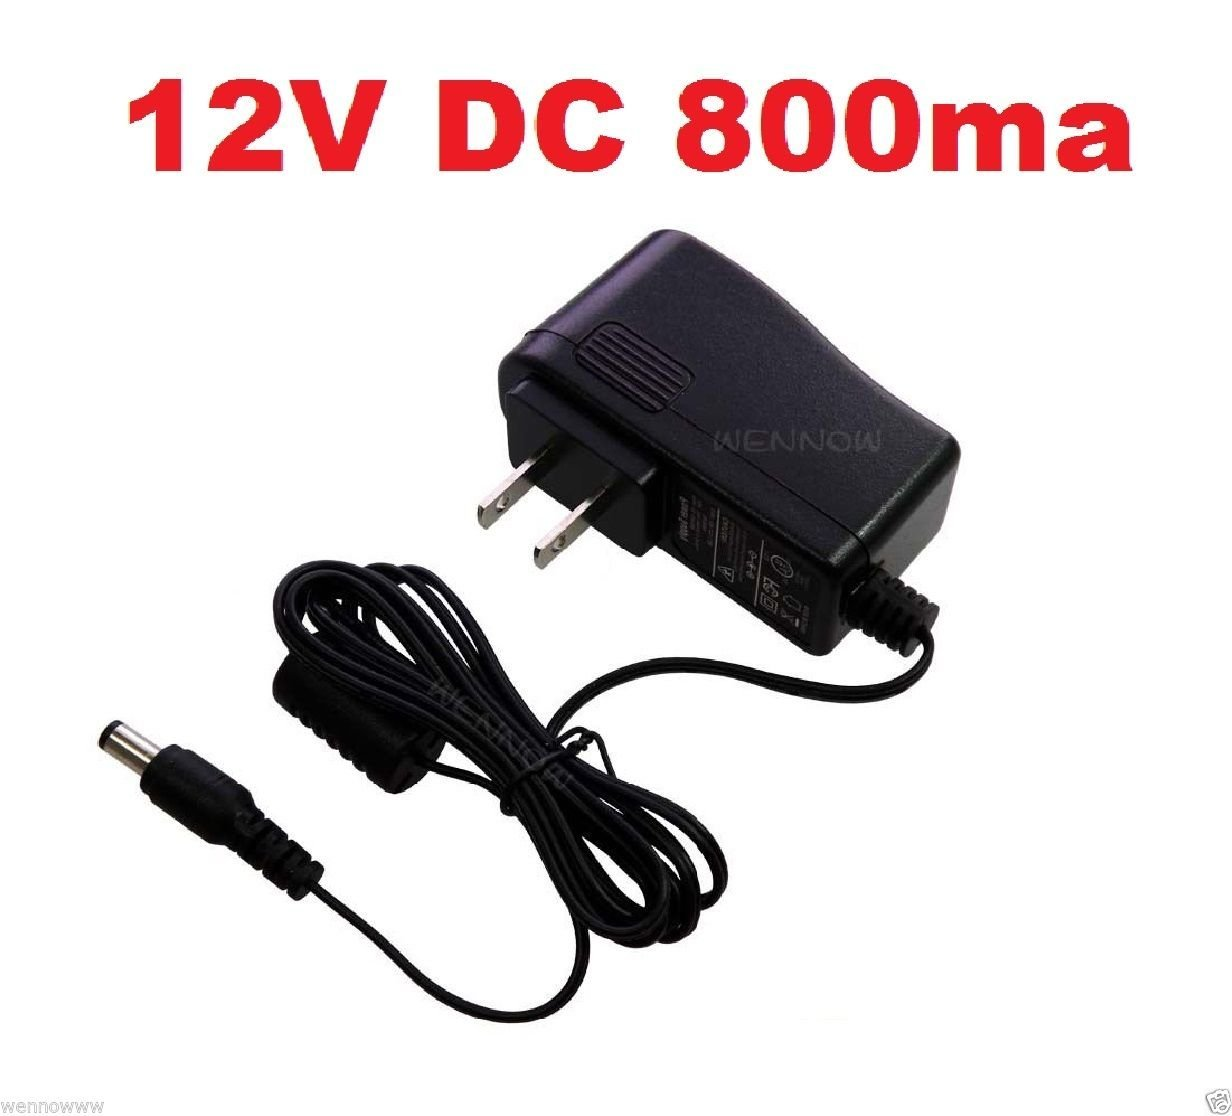 wennow 12v Dc 800ma Regulated CCTV Camera Power Supply Dc 12v Power Adapter